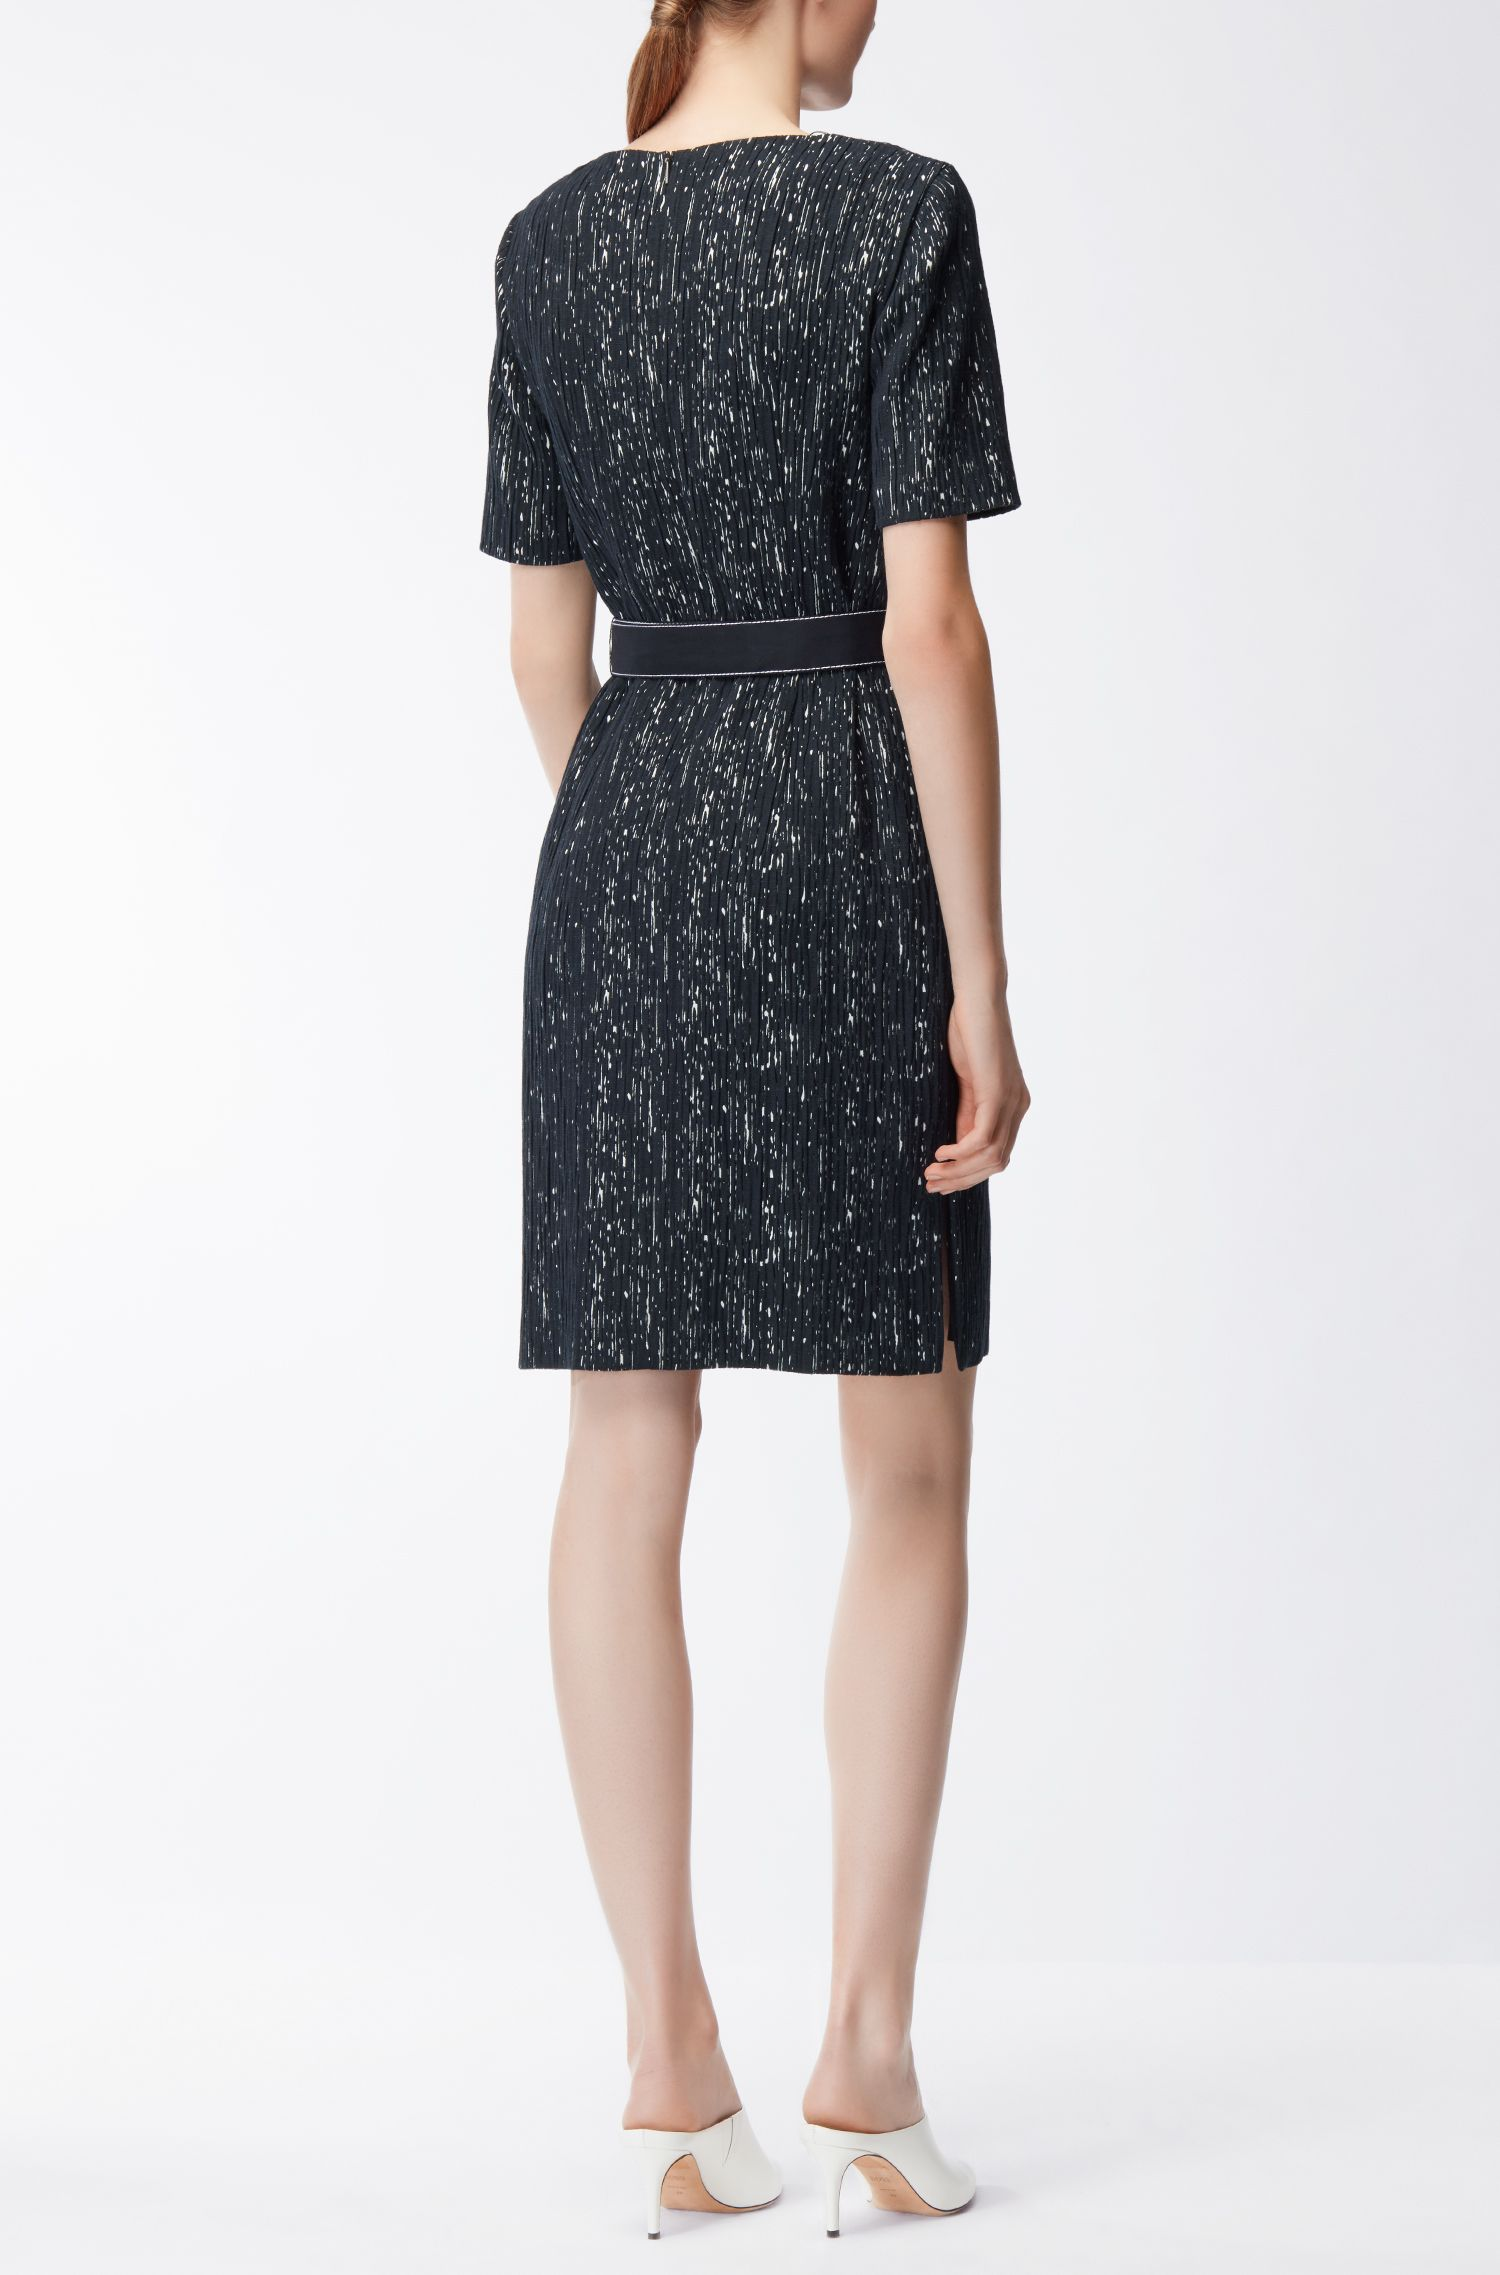 Belted shift dress in a patterned structured stretch fabric BOSS